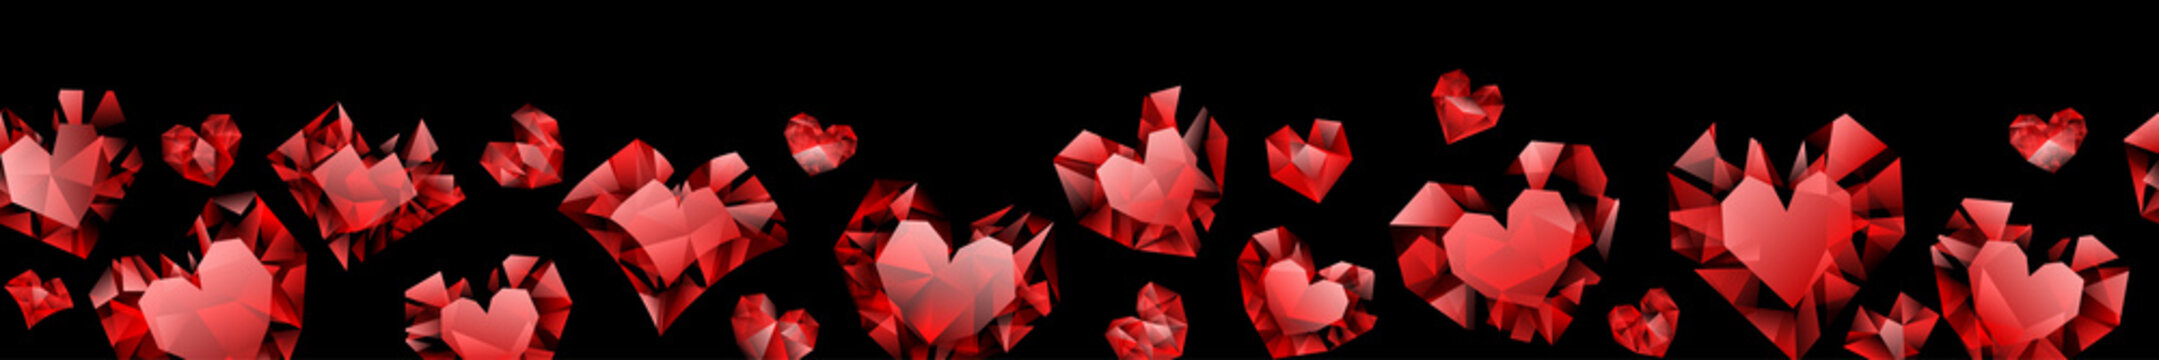 Banner of red hearts made of crystals witn shadows on black background